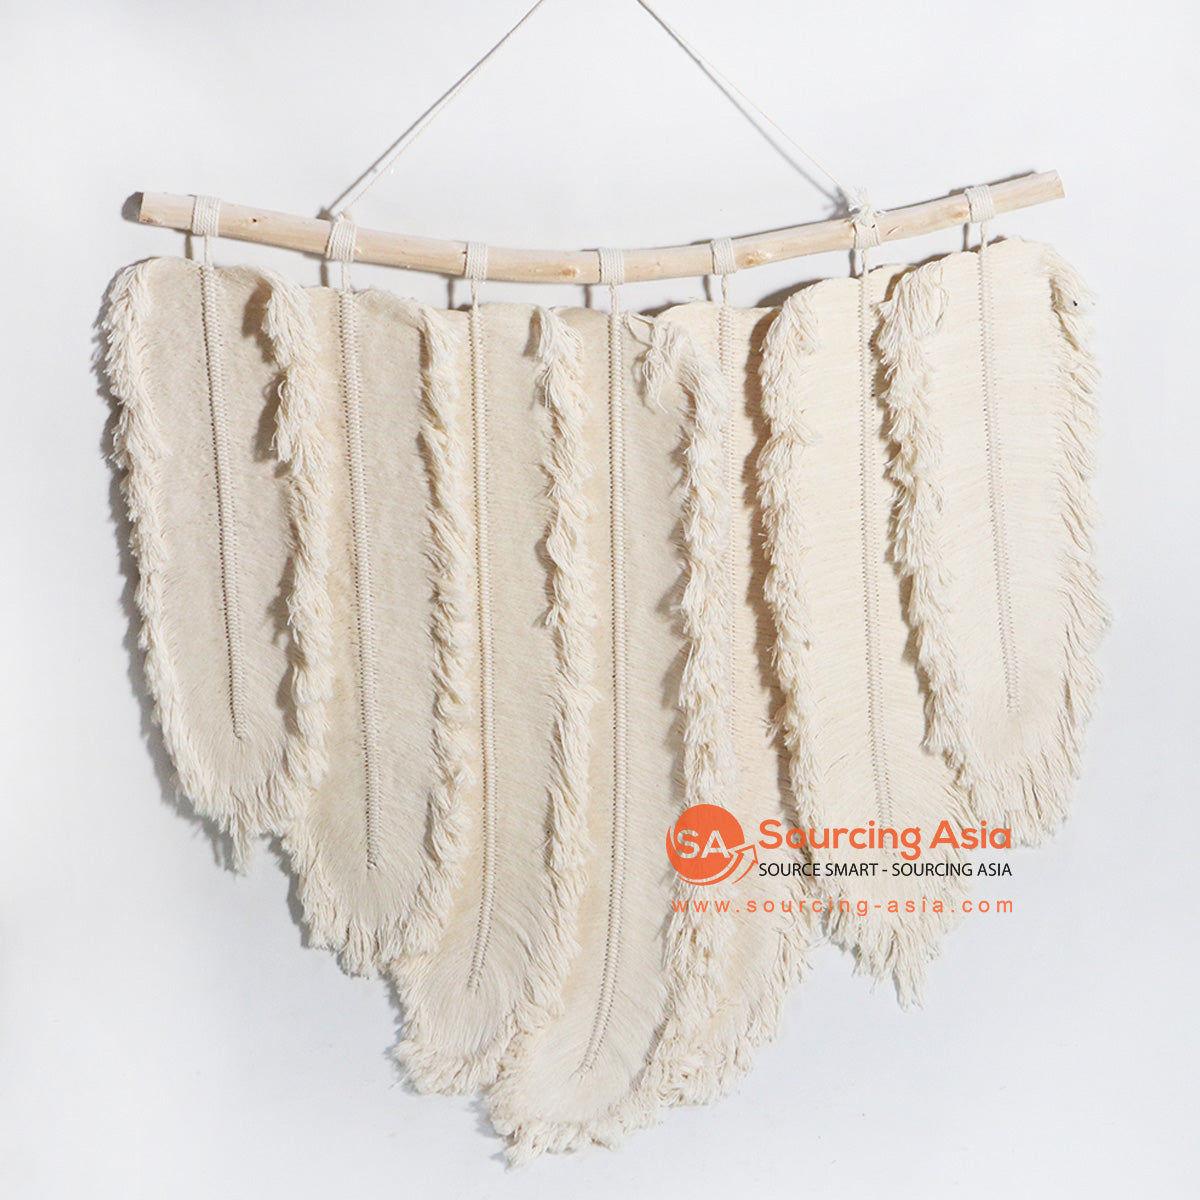 HBSC173-1 WHITE FEATHER TYPE WALL DECORATION